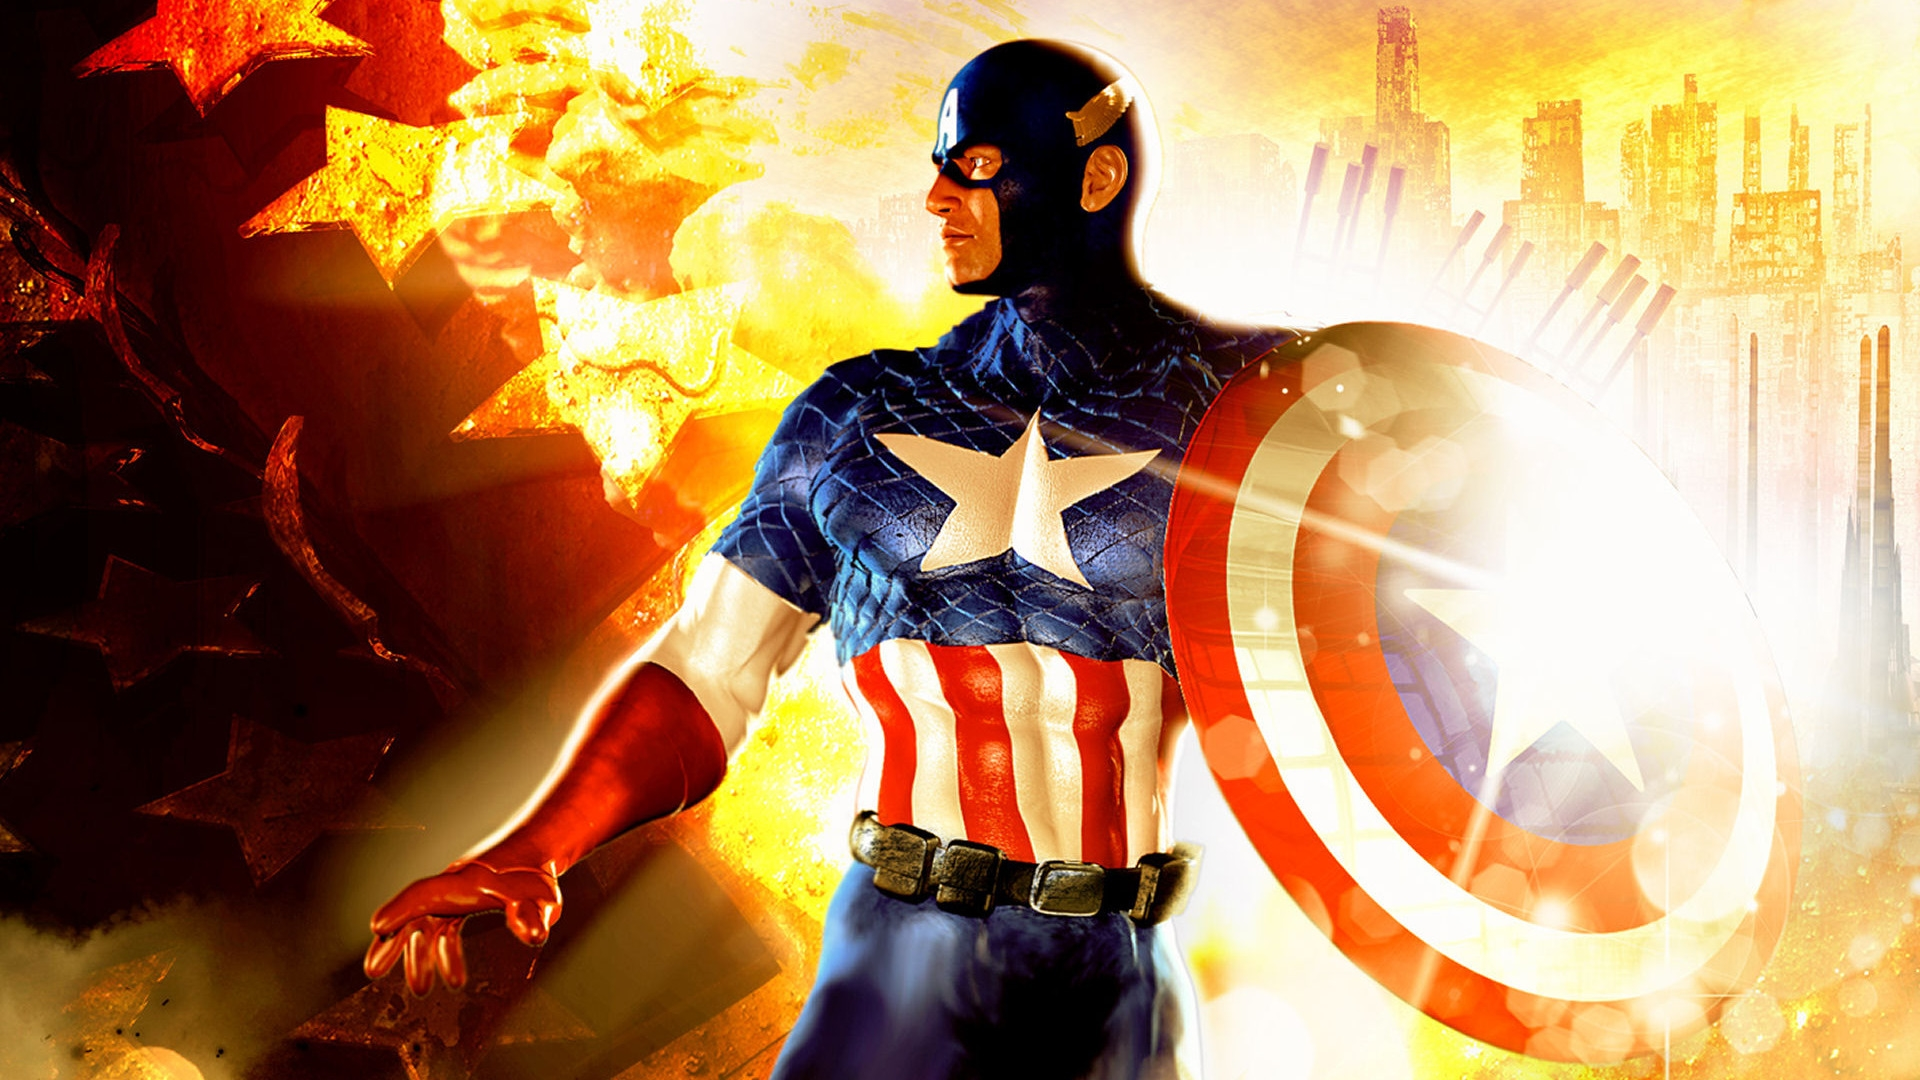 Captain america wallpapers hd wallpapers - Captain america hd images download ...